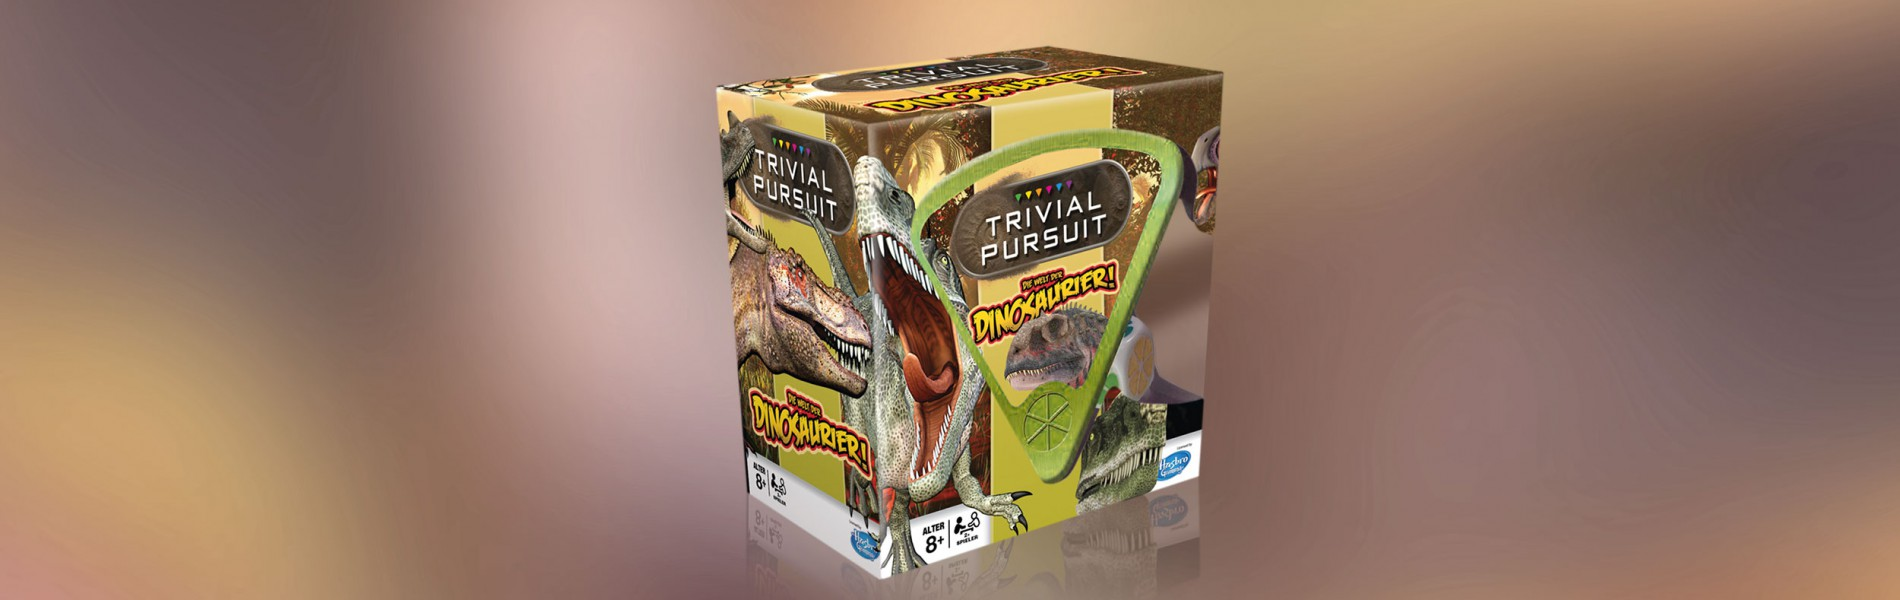 Trivial Pursuit Dinosaurier